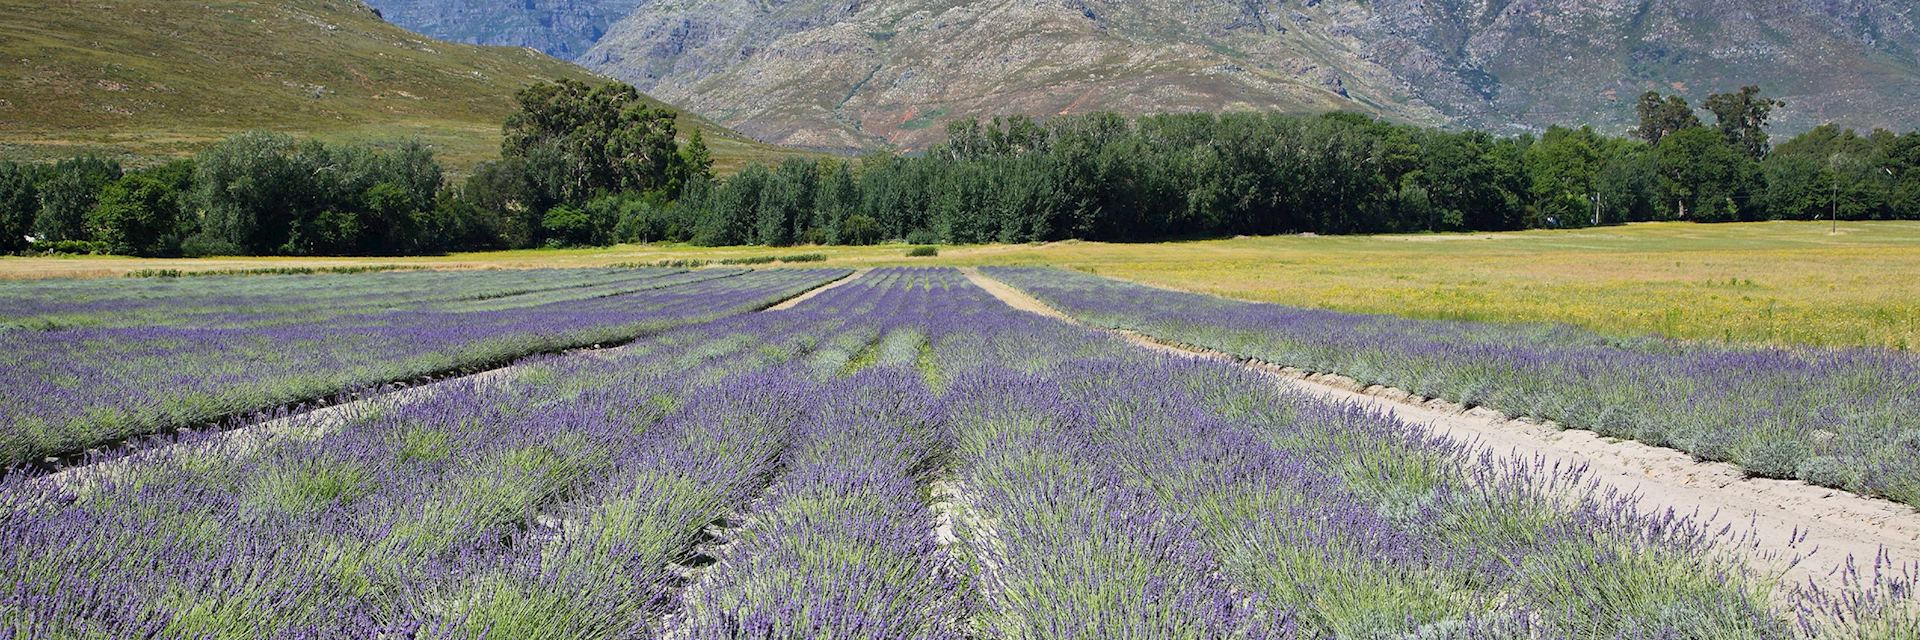 Lavender fields in Franschhoek, South Africa